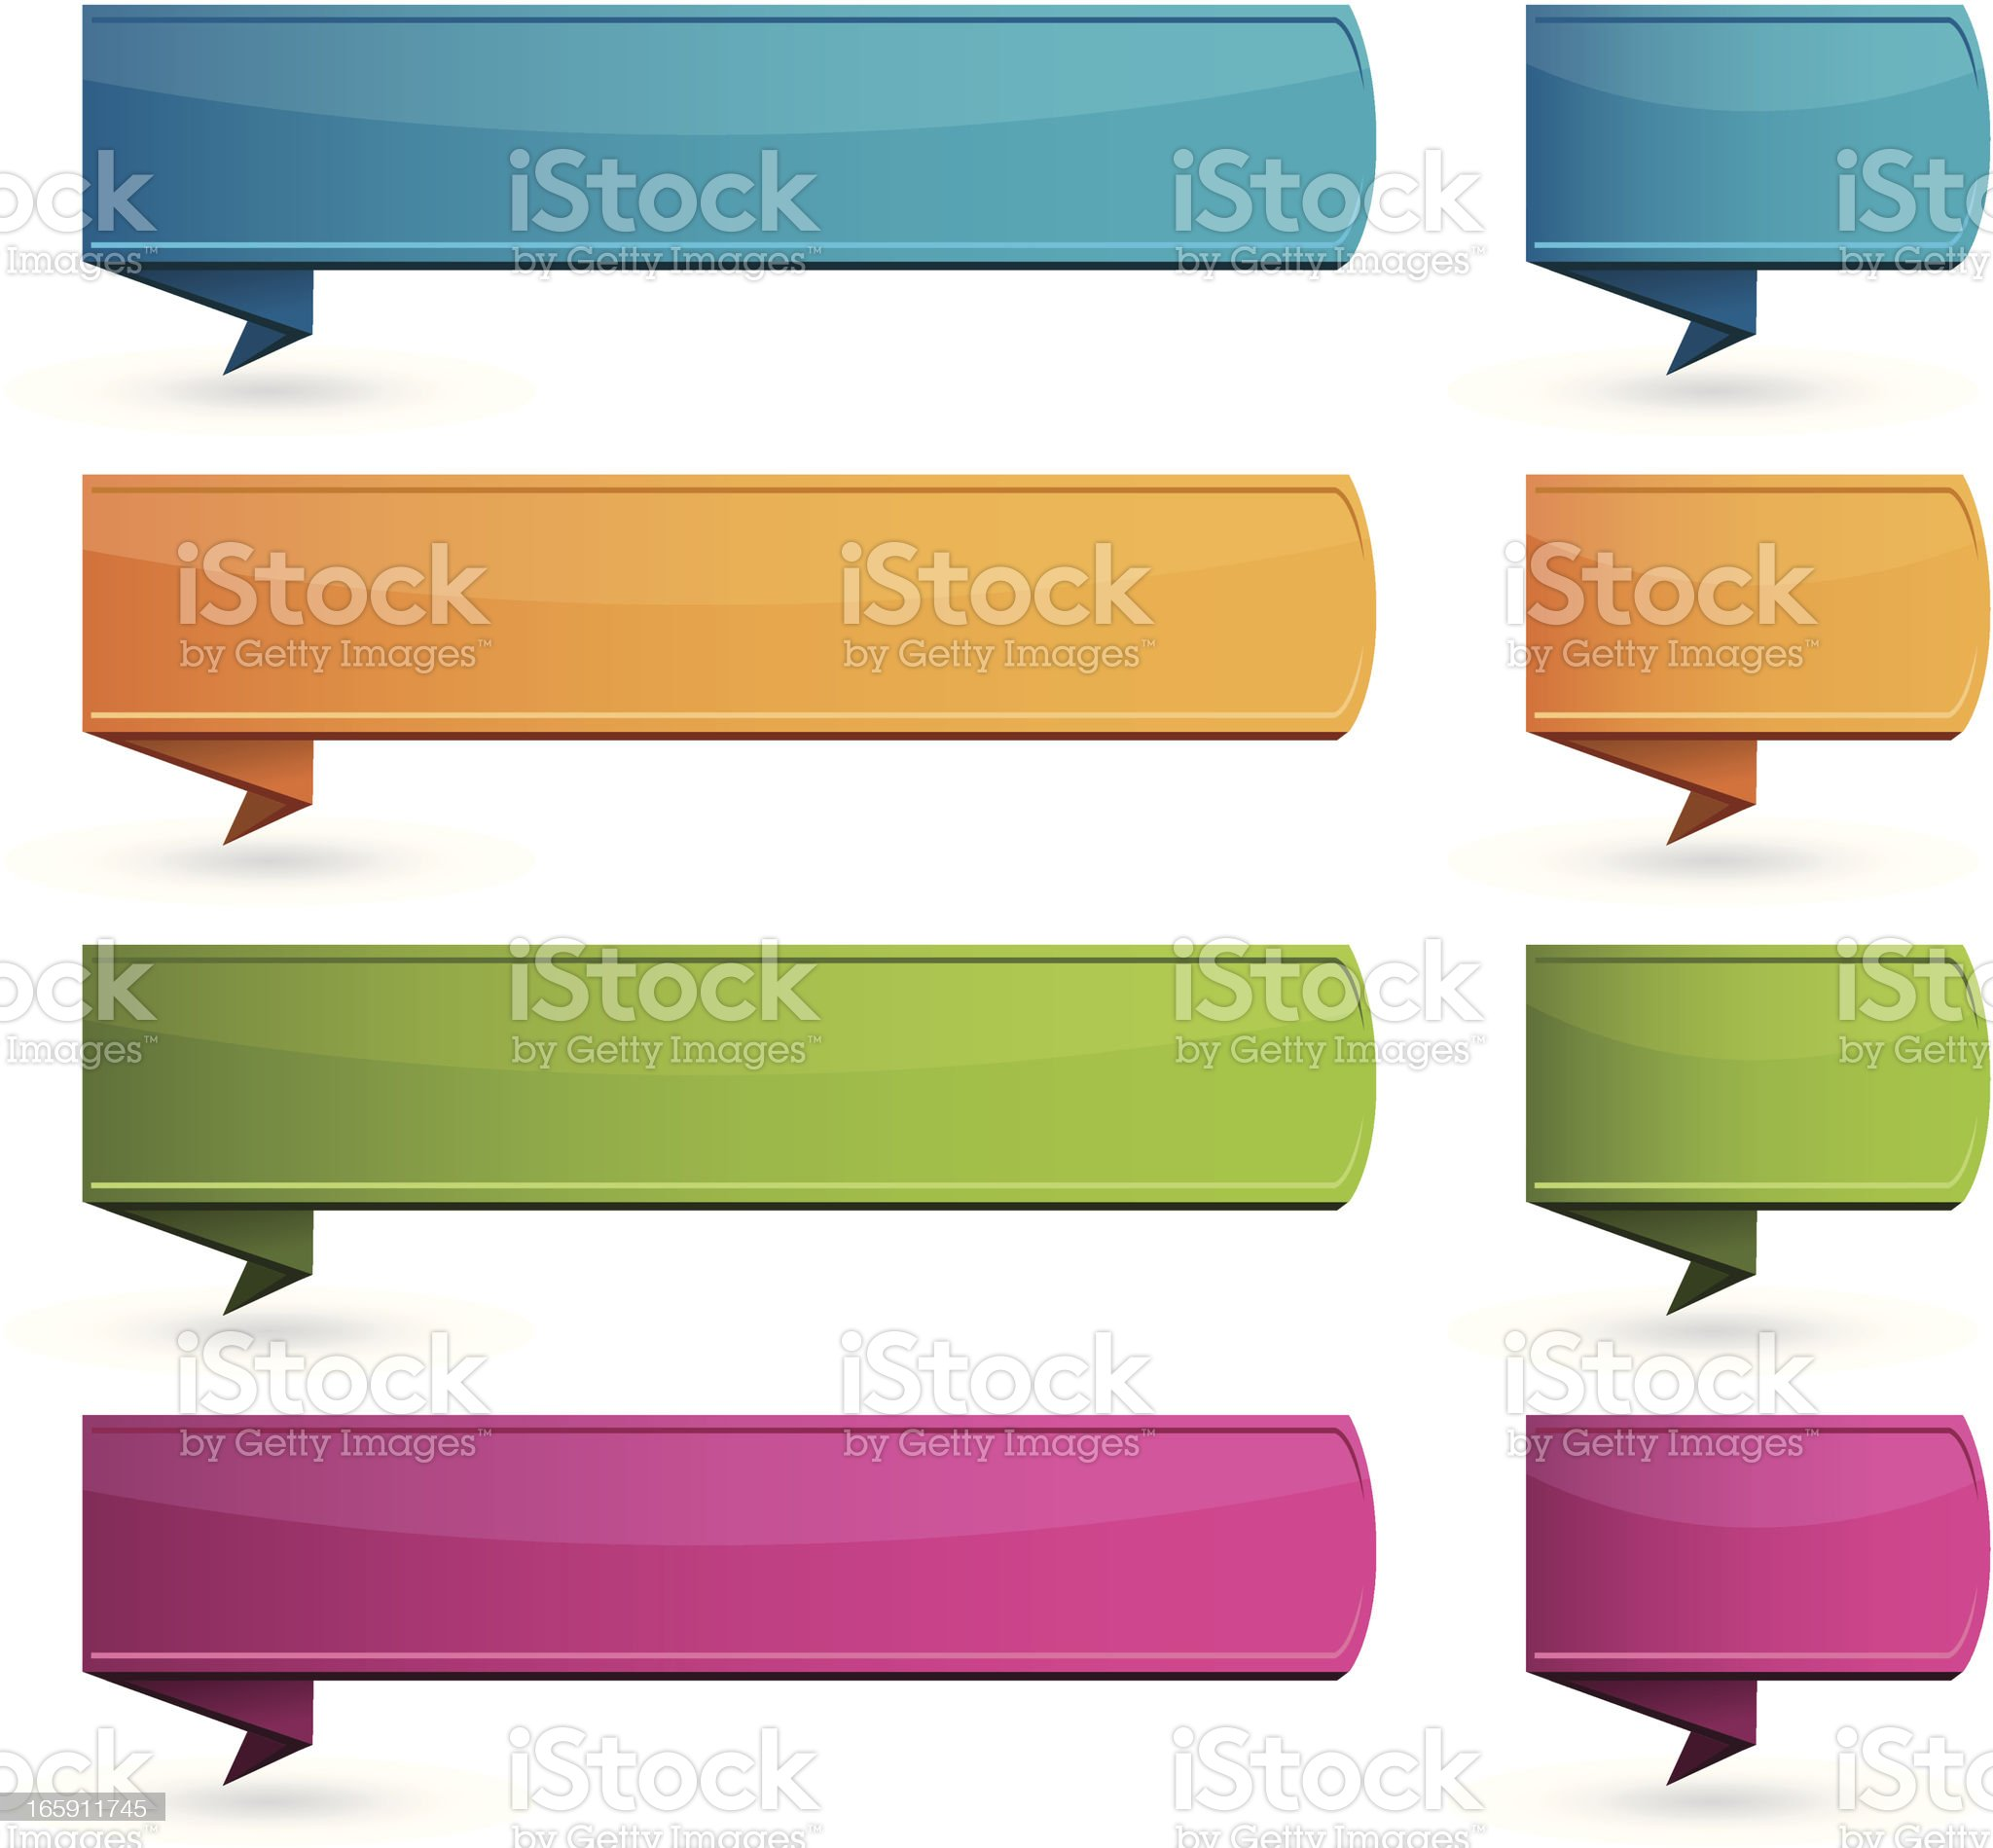 Internet text banners origami style royalty-free stock vector art